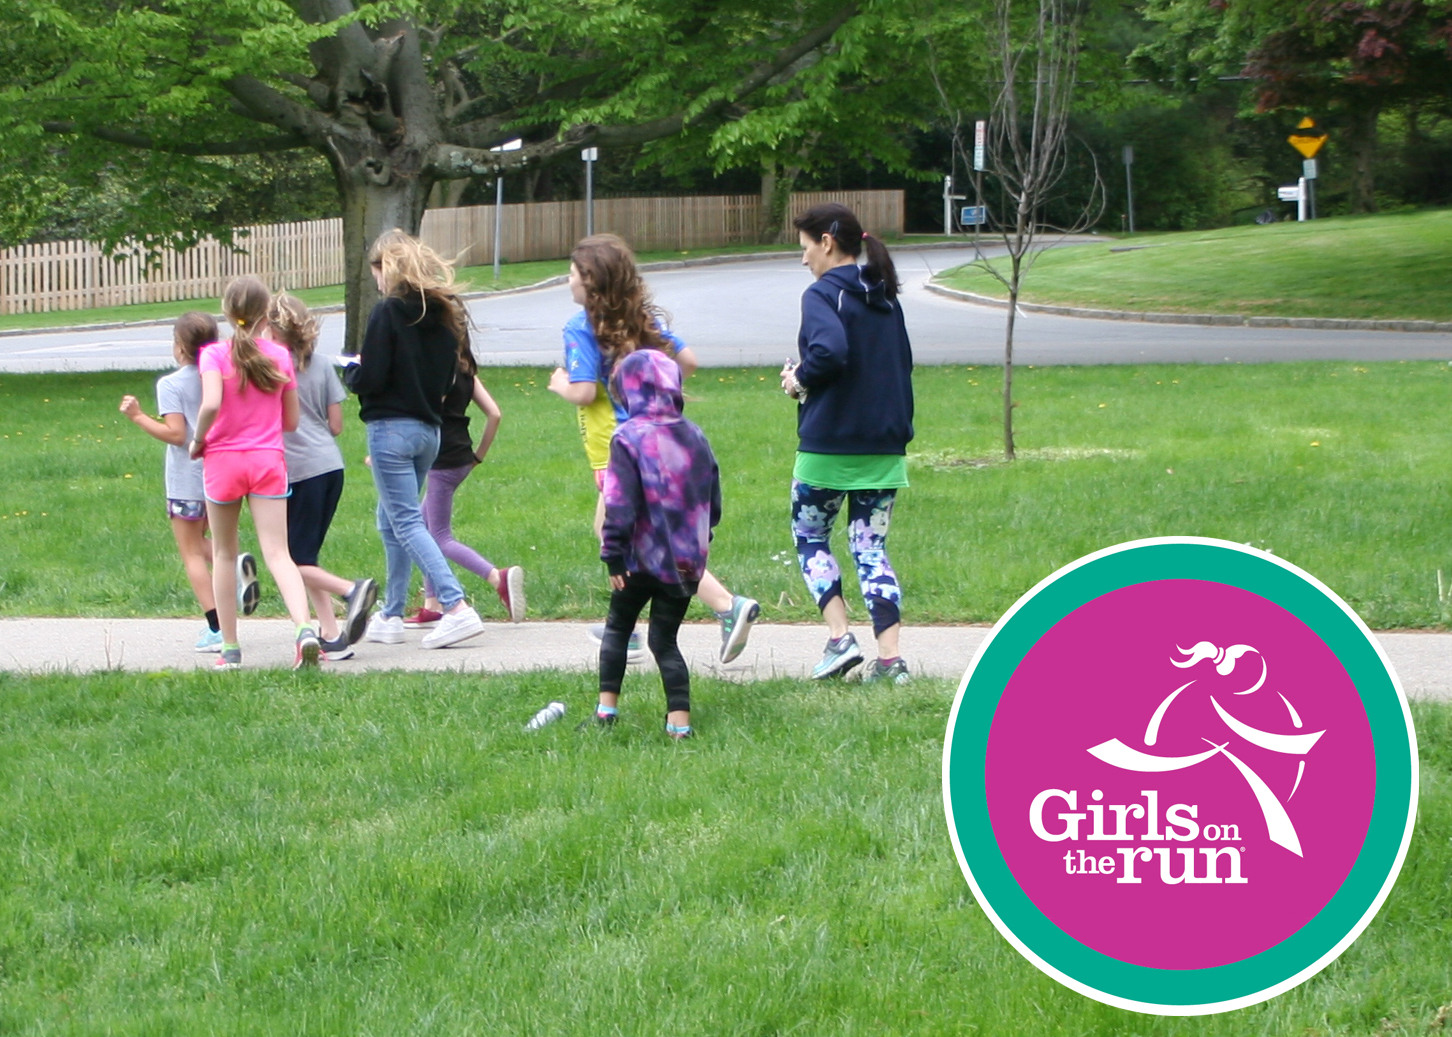 girls on the run practice 1.jpg